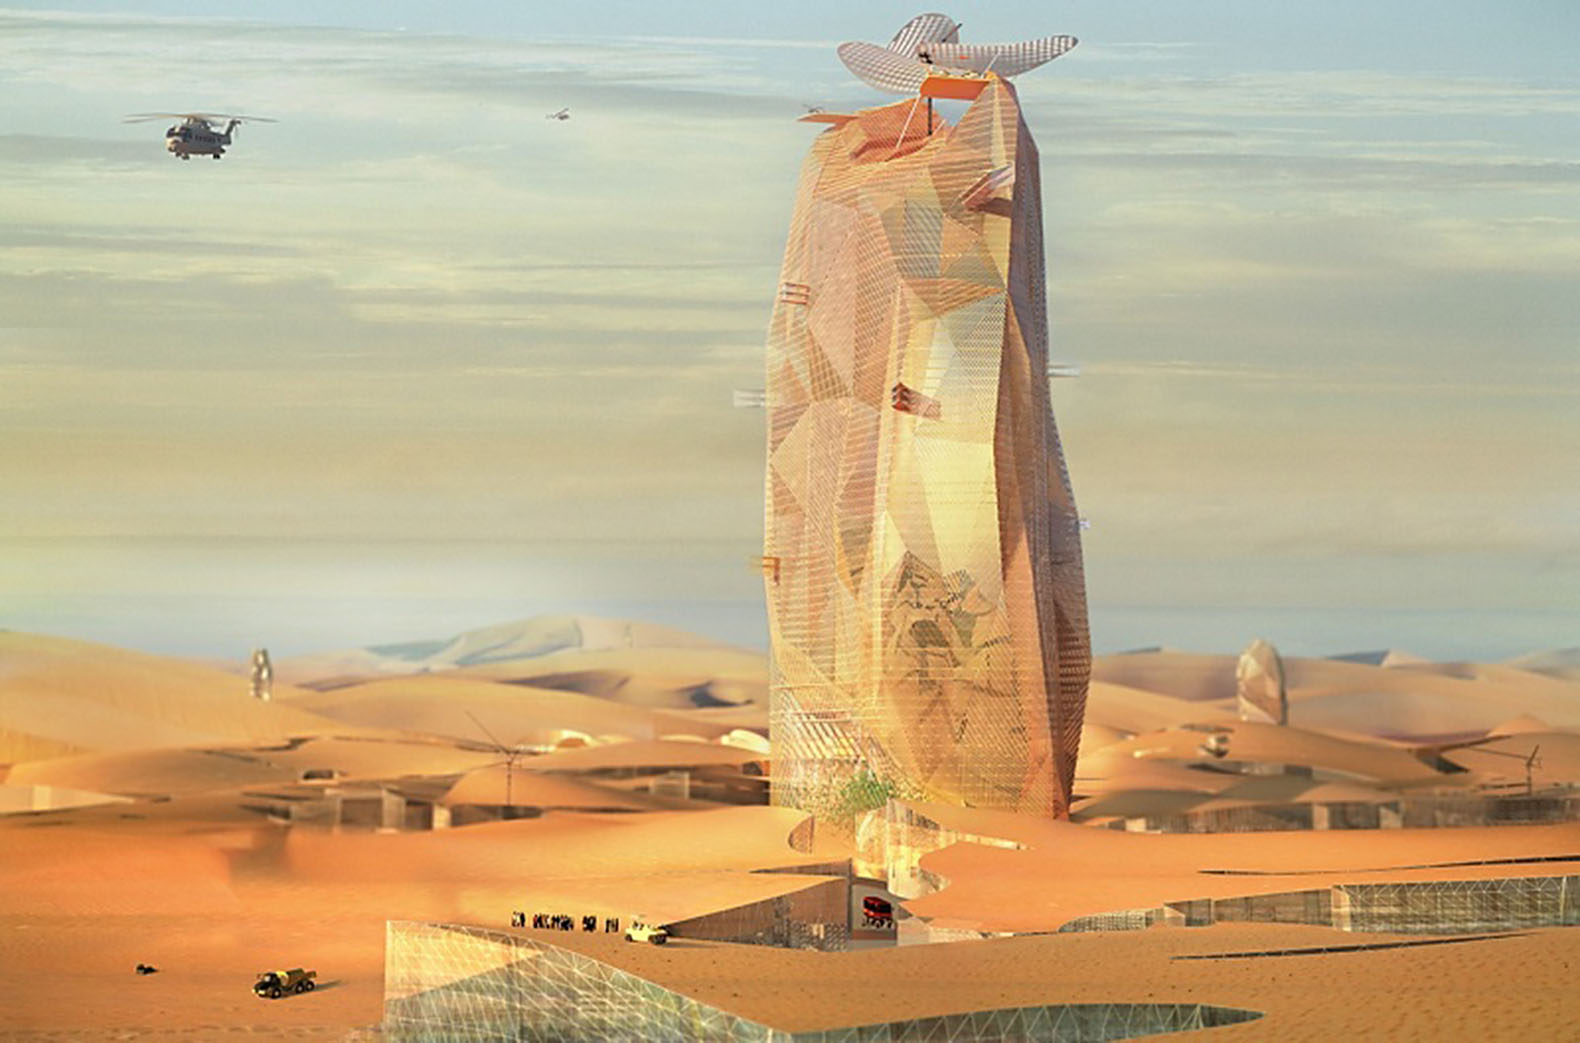 Futuristic self-sufficient vertical city rises from the Sahara Desert